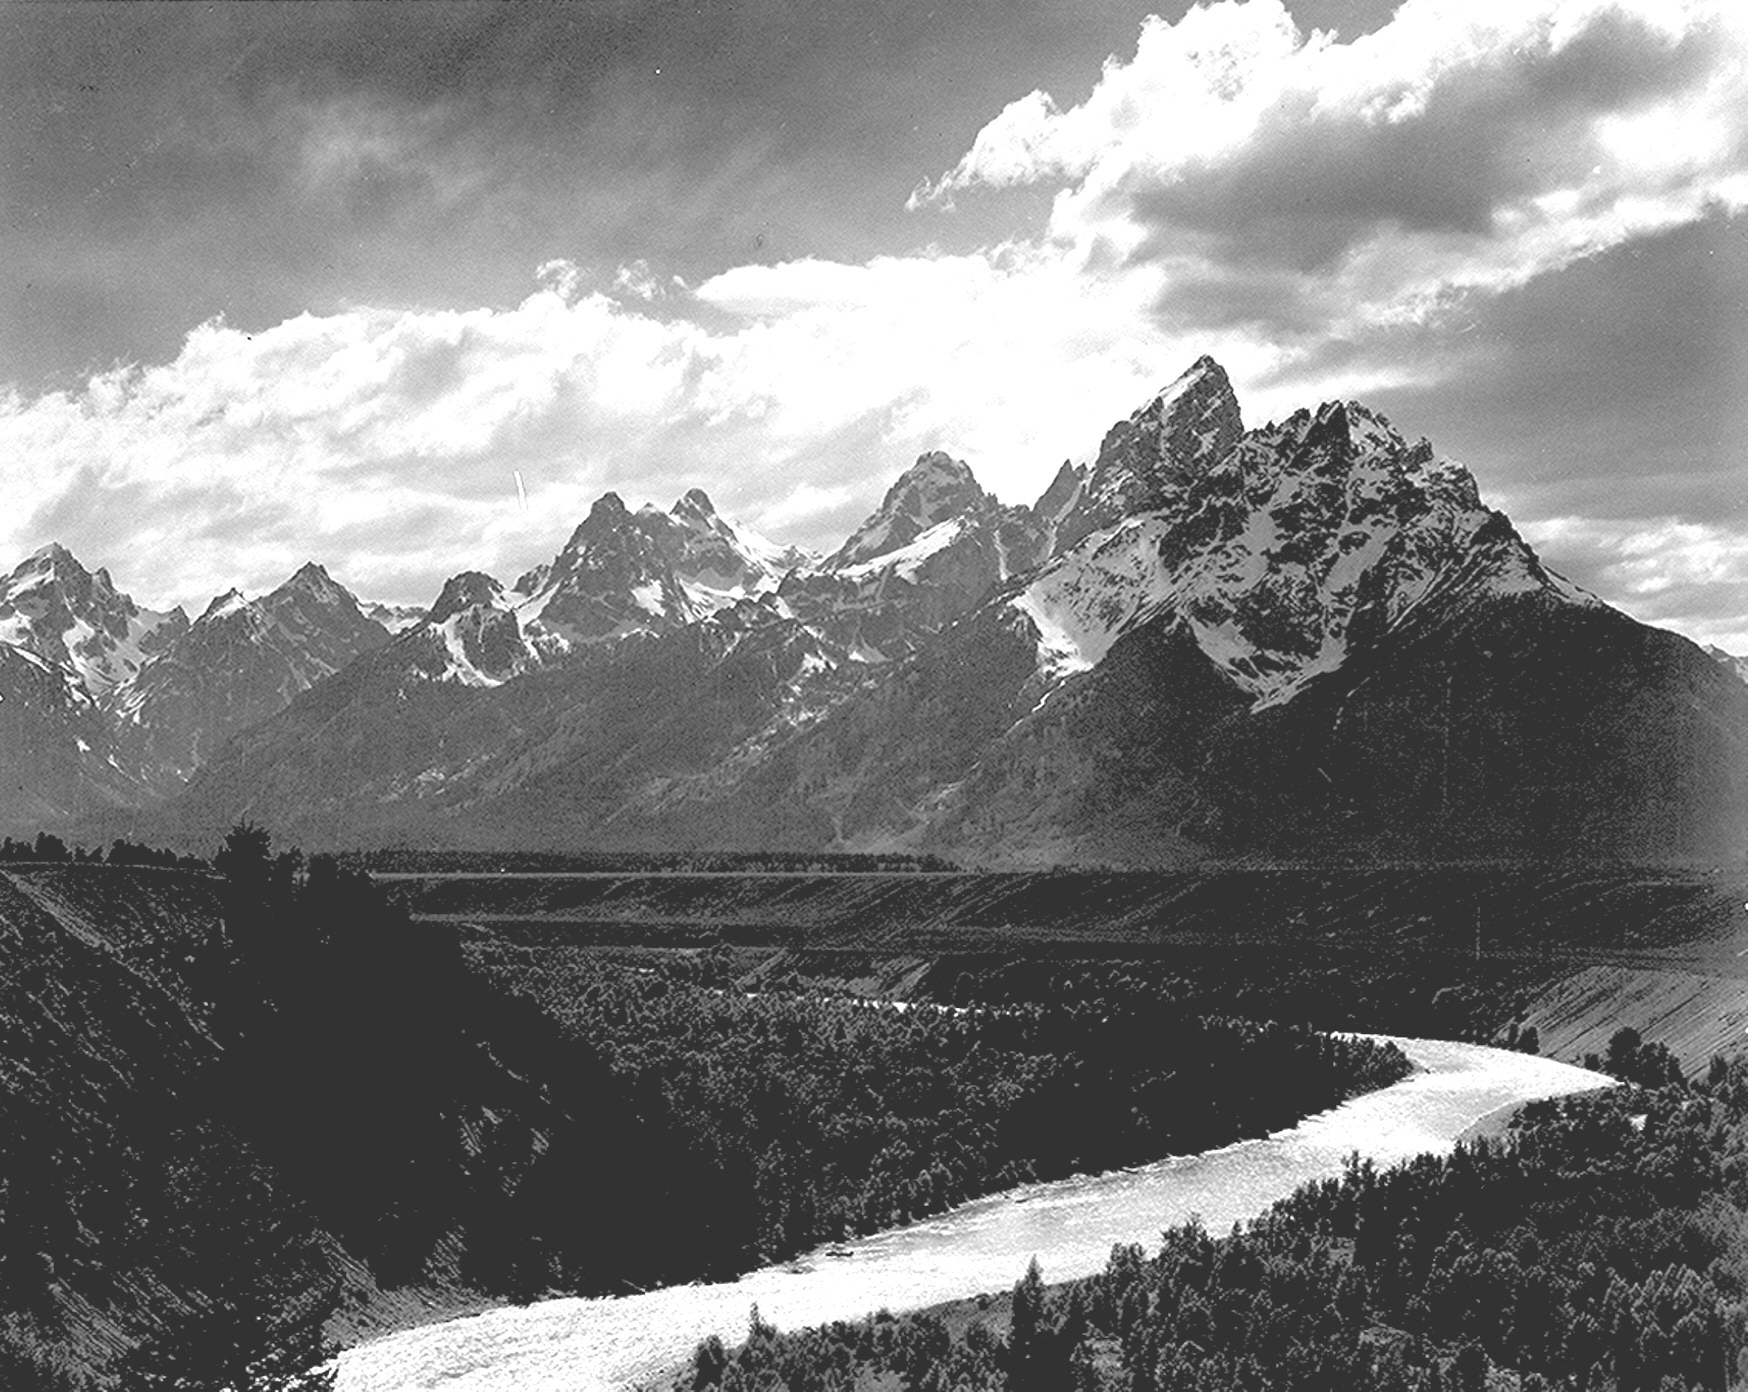 Ansel Adams Photographer and Environmentalist Art Blart legacy